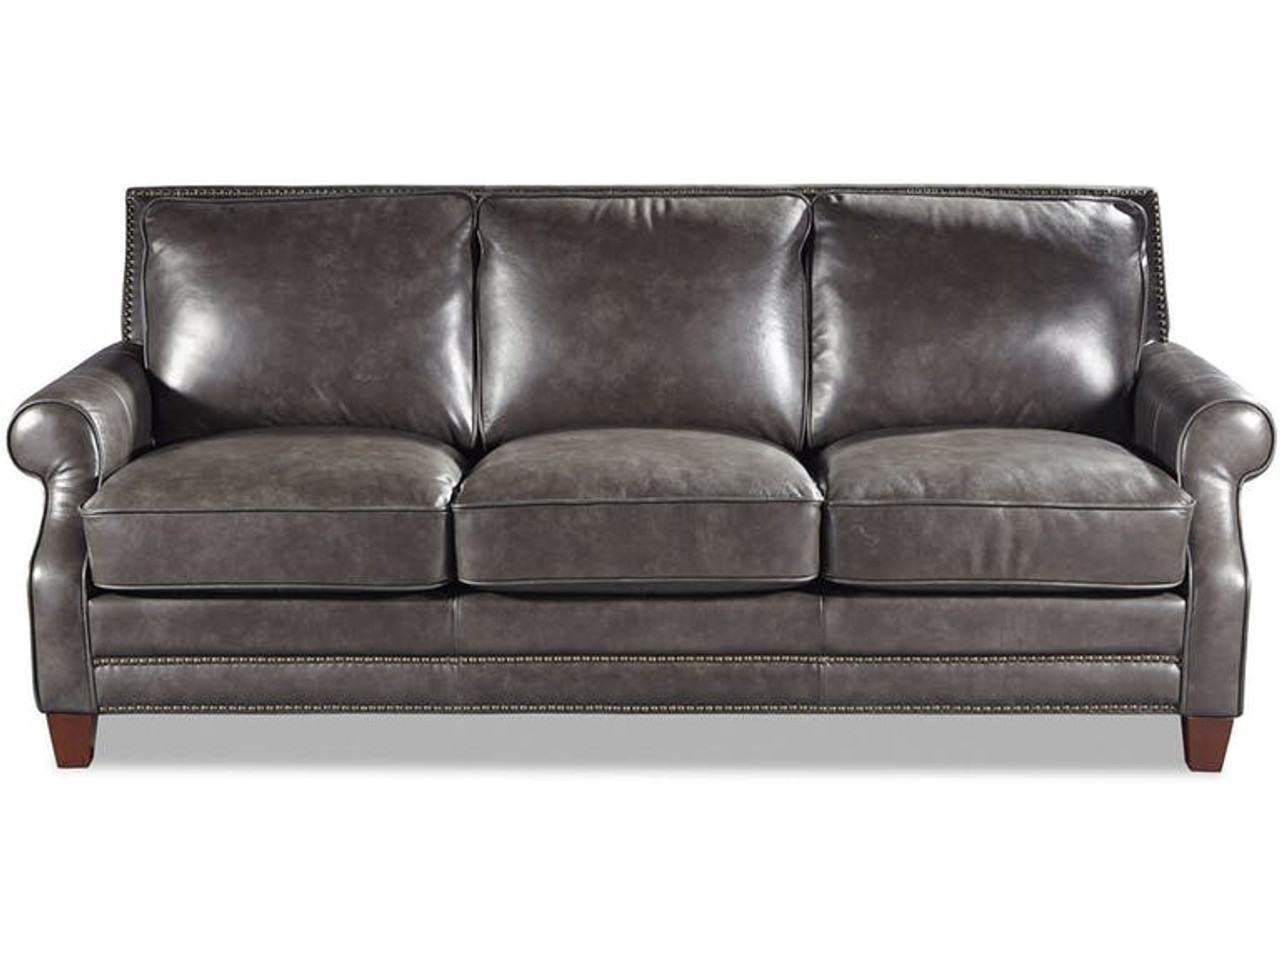 Super Craftmaster Leather Sofa L164050 At Marty Raes Of Orangeburg Alphanode Cool Chair Designs And Ideas Alphanodeonline